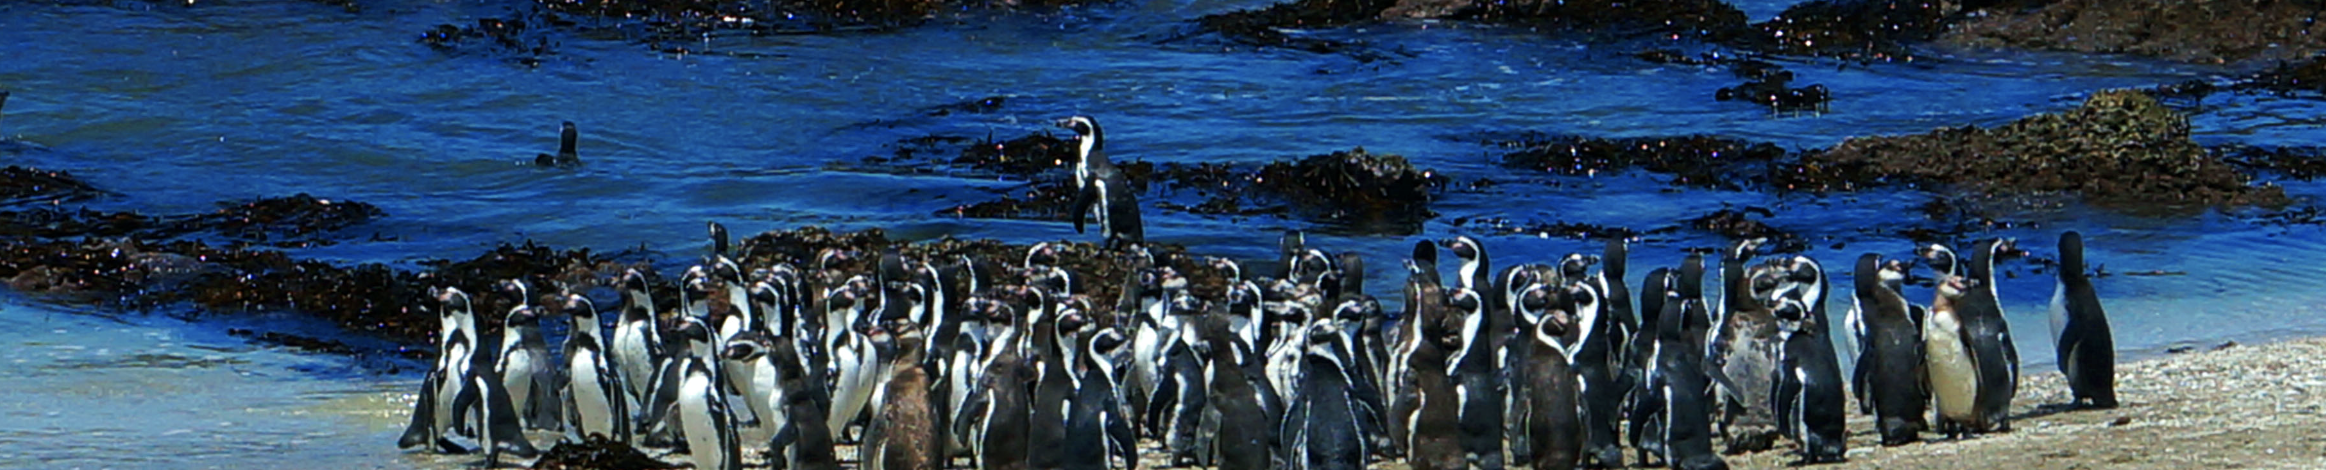 penguins peru